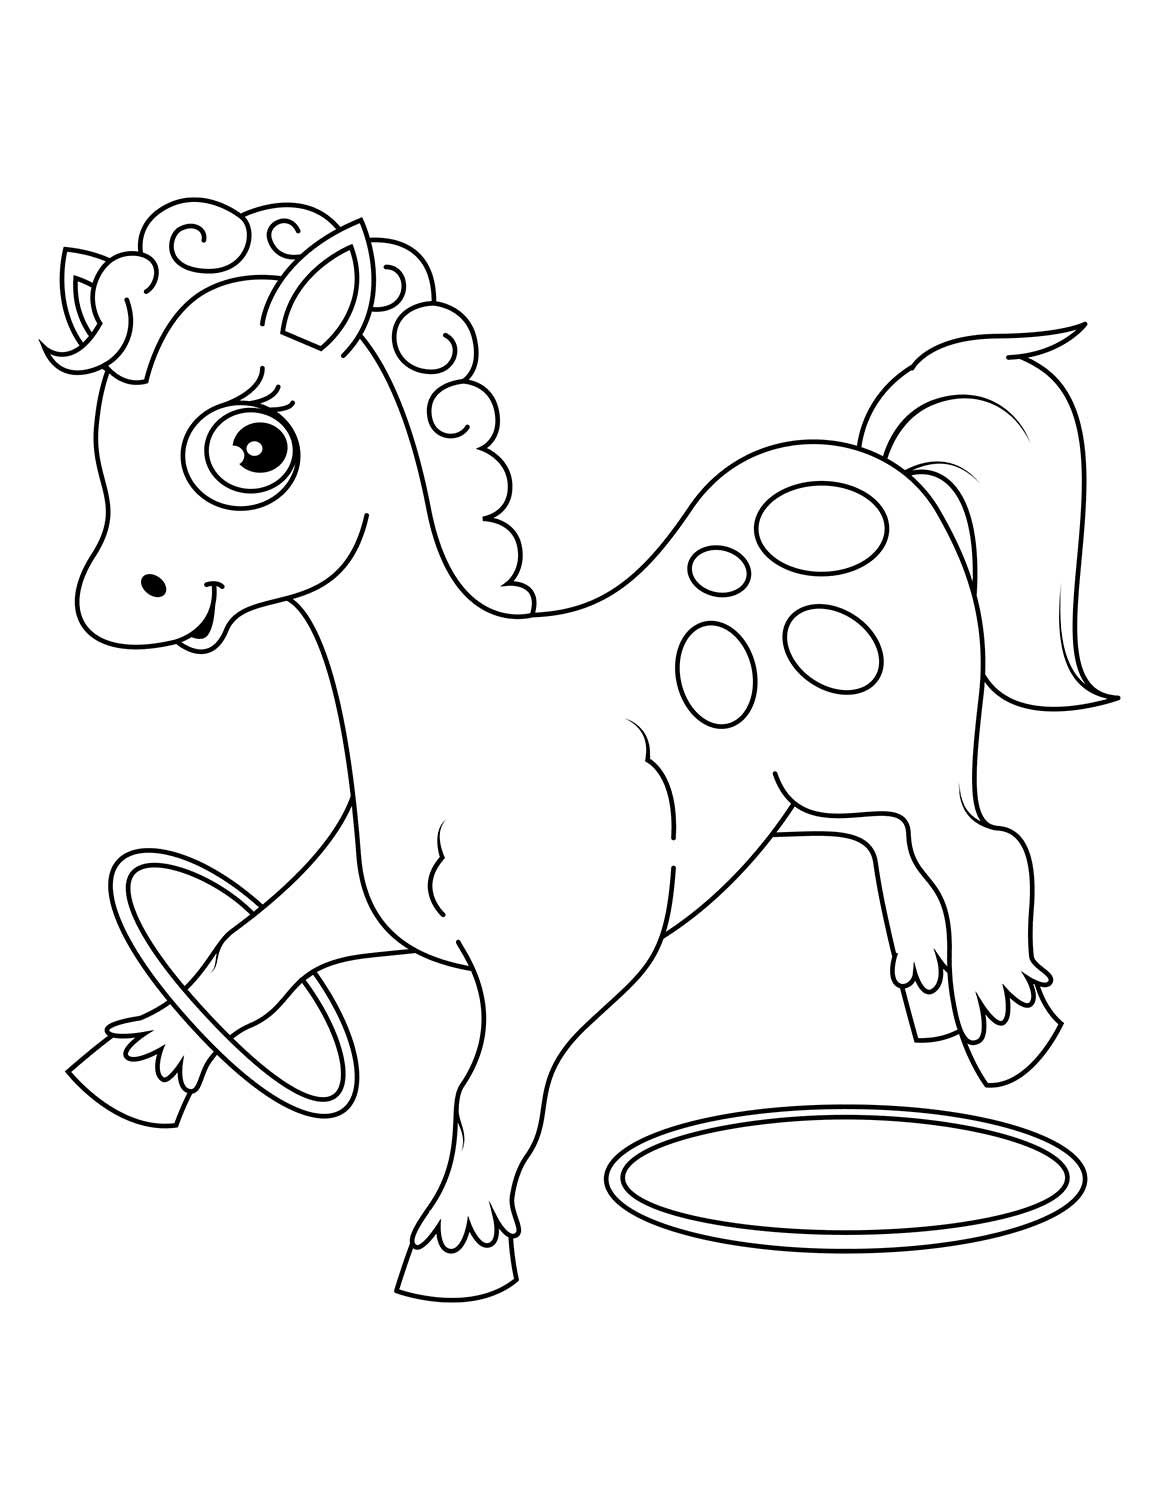 Cute Horse Plays With Rings Coloring Page Horse Coloring Pages Horse Coloring Animal Coloring Pages [ 1500 x 1159 Pixel ]